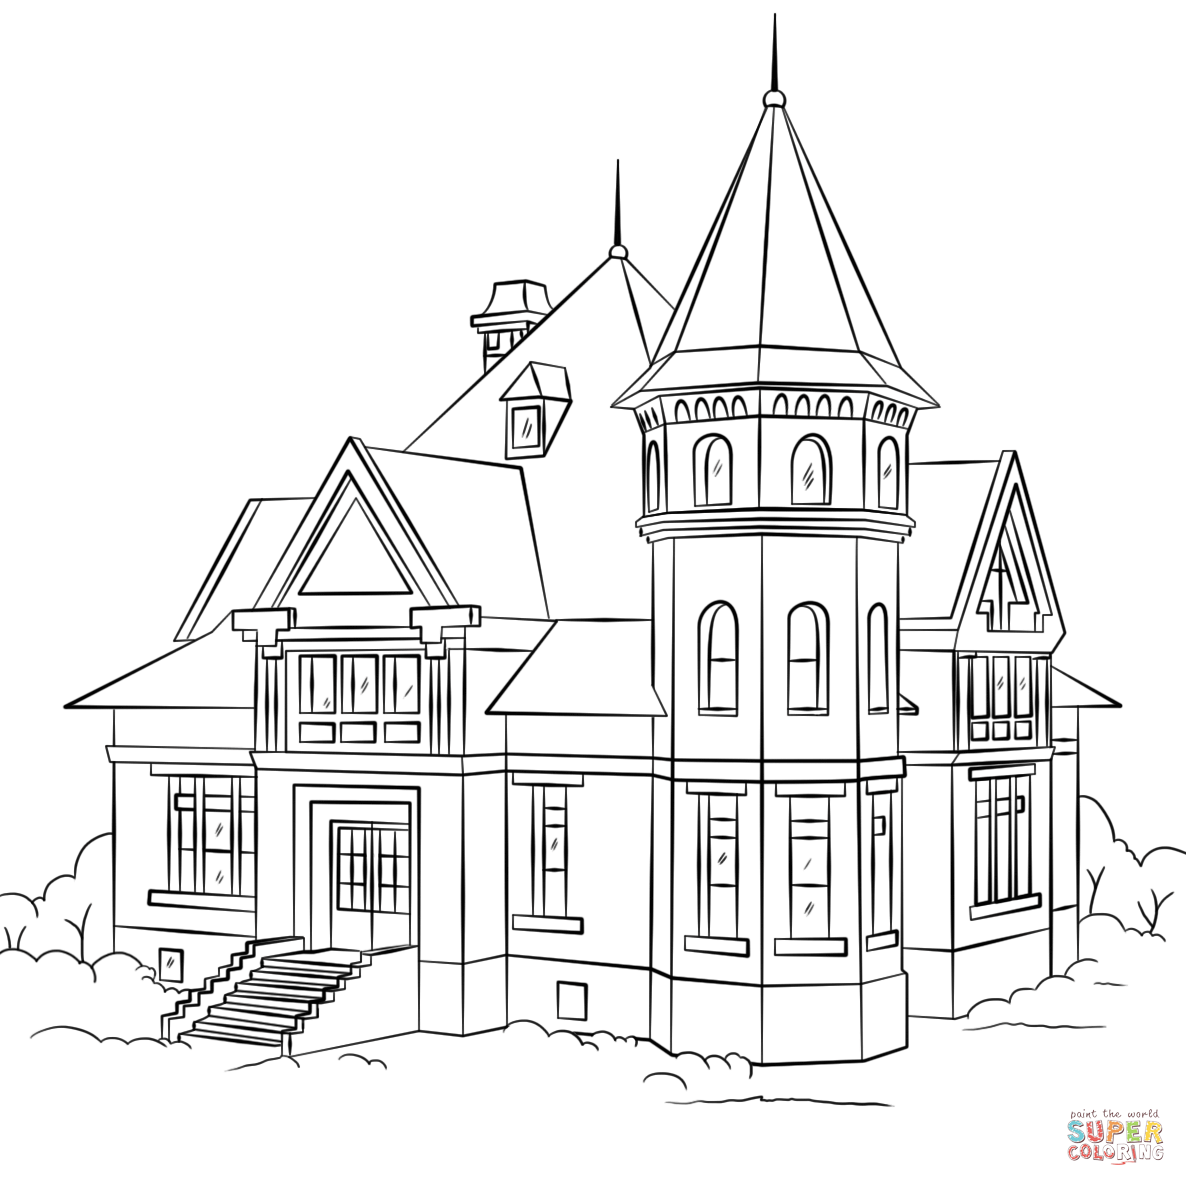 coloring page house architecture village roofs architecture adult coloring pages coloring house page